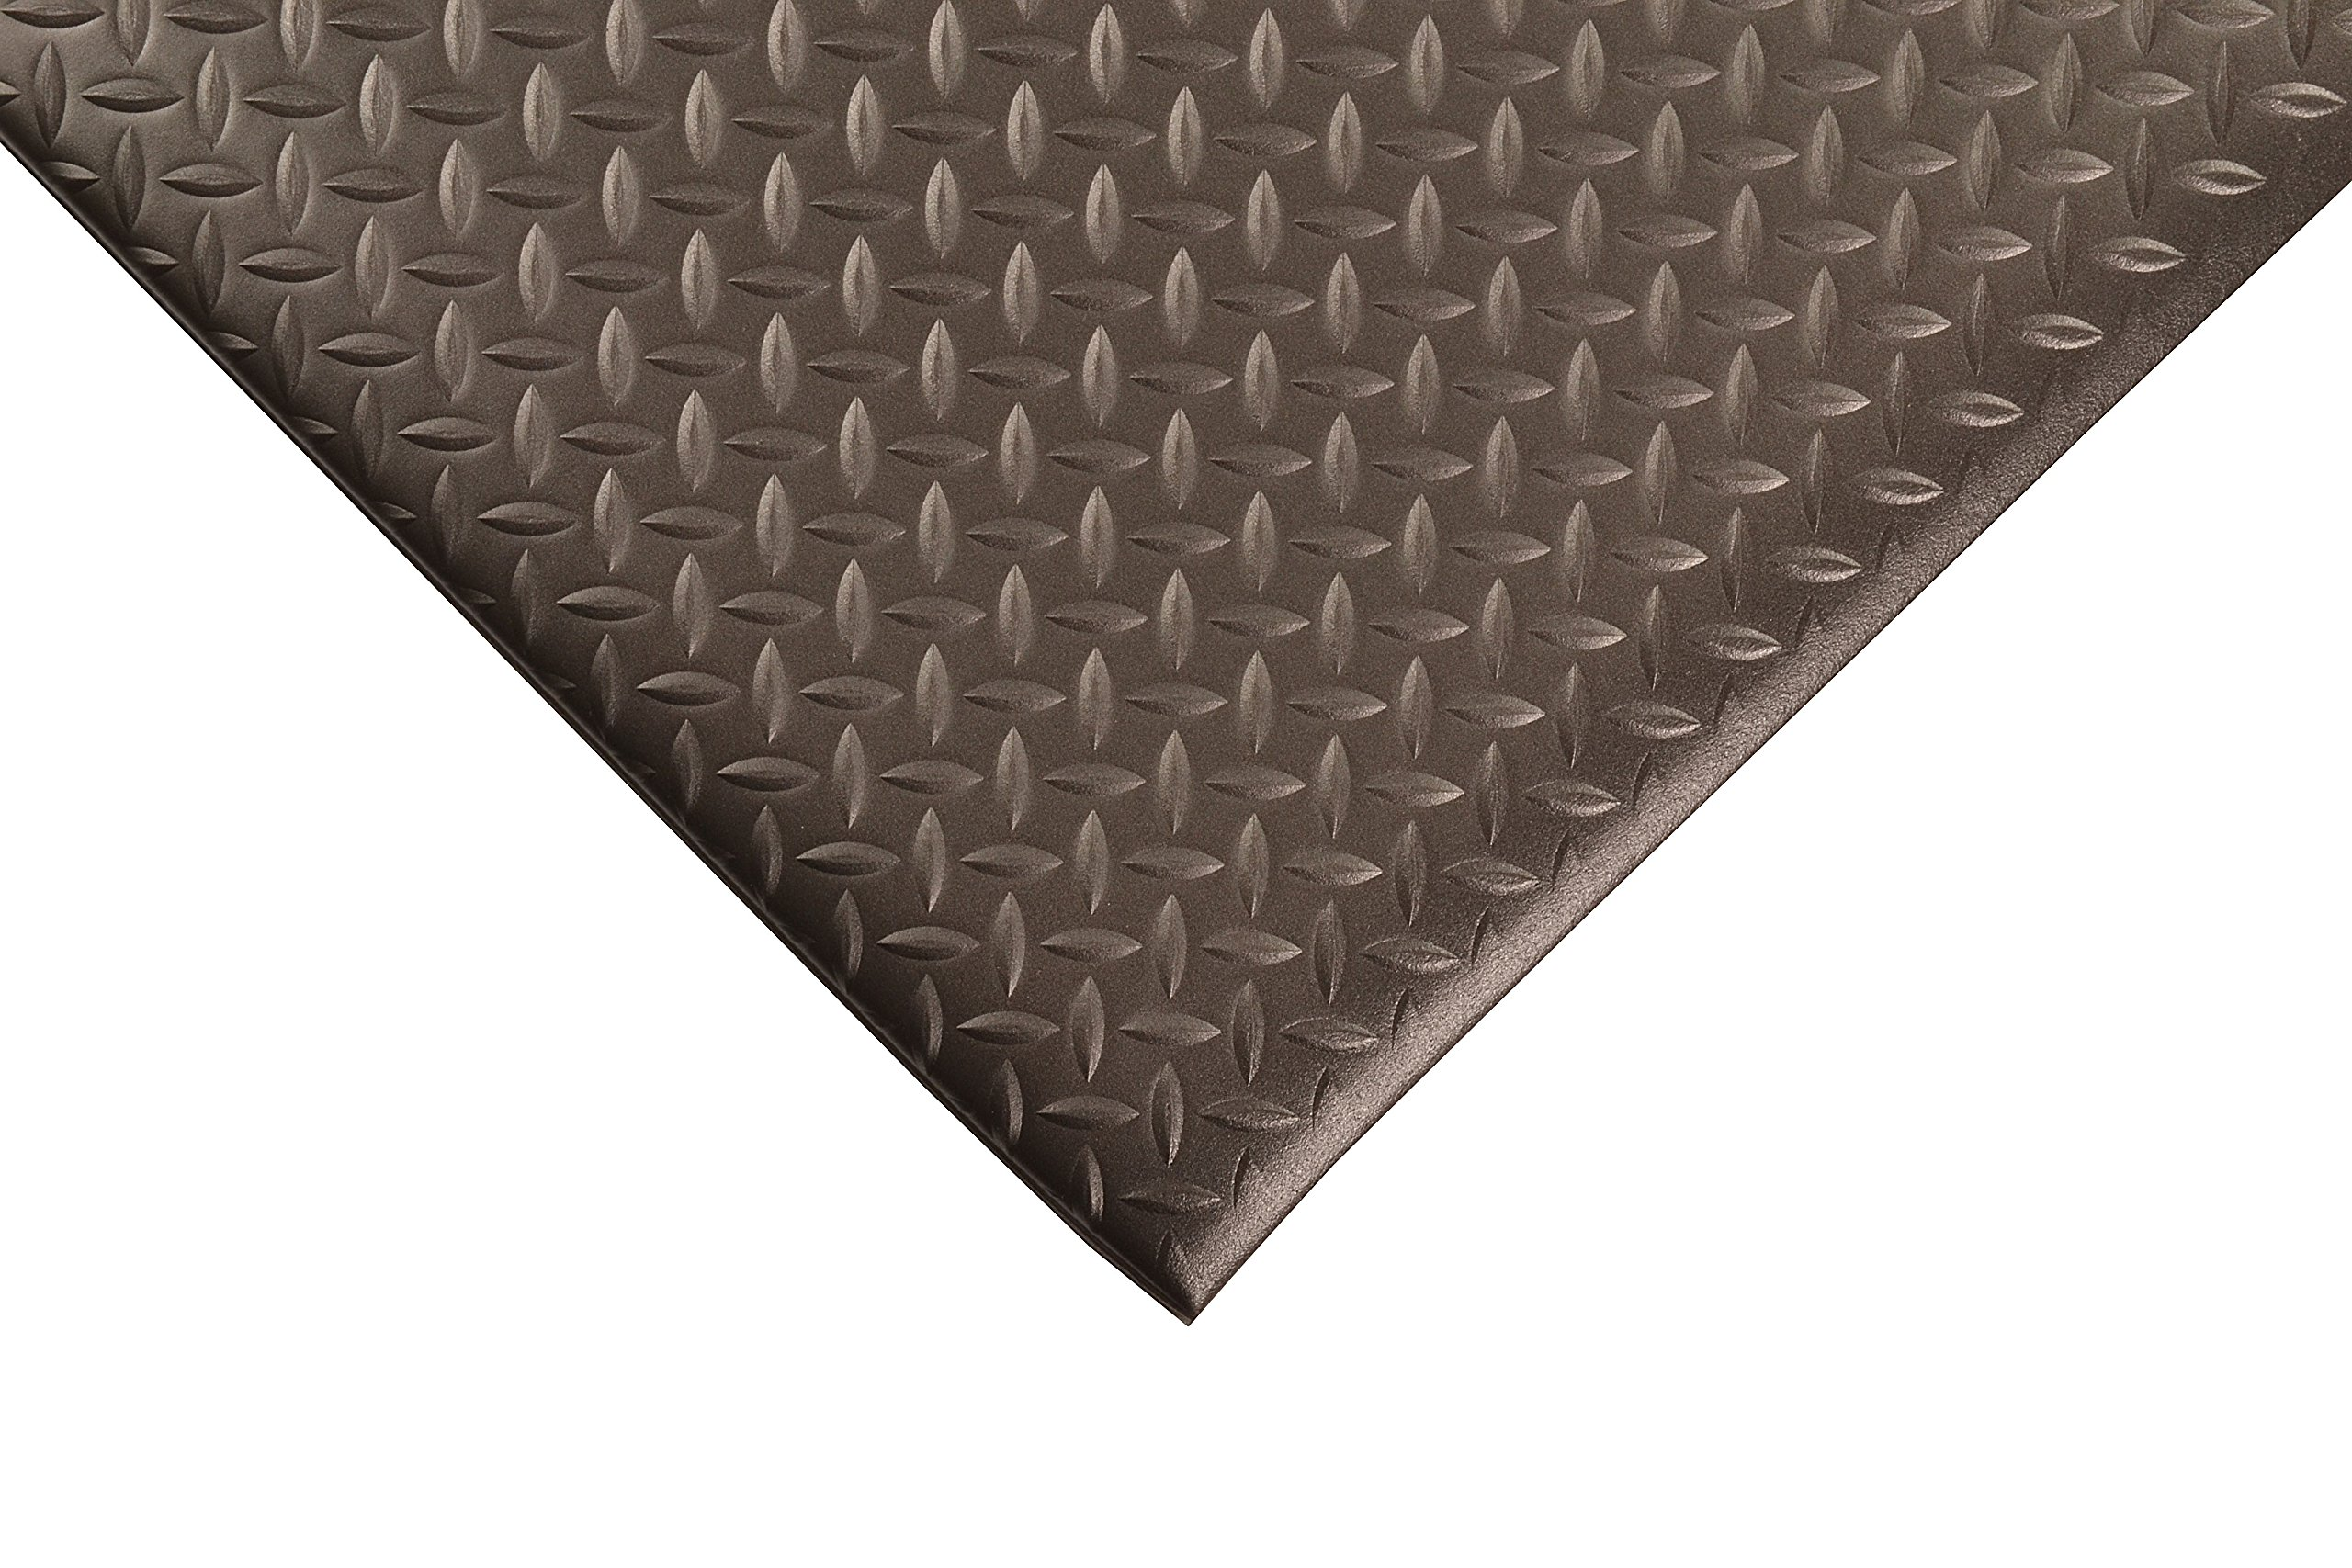 NoTrax 419 Diamond Sof-Tred Safety/Anti-Fatigue Mat with Dyna-Shield PVC Sponge, for Dry Areas, 2' Width x 6' Length x 1/2'' Thickness, Black